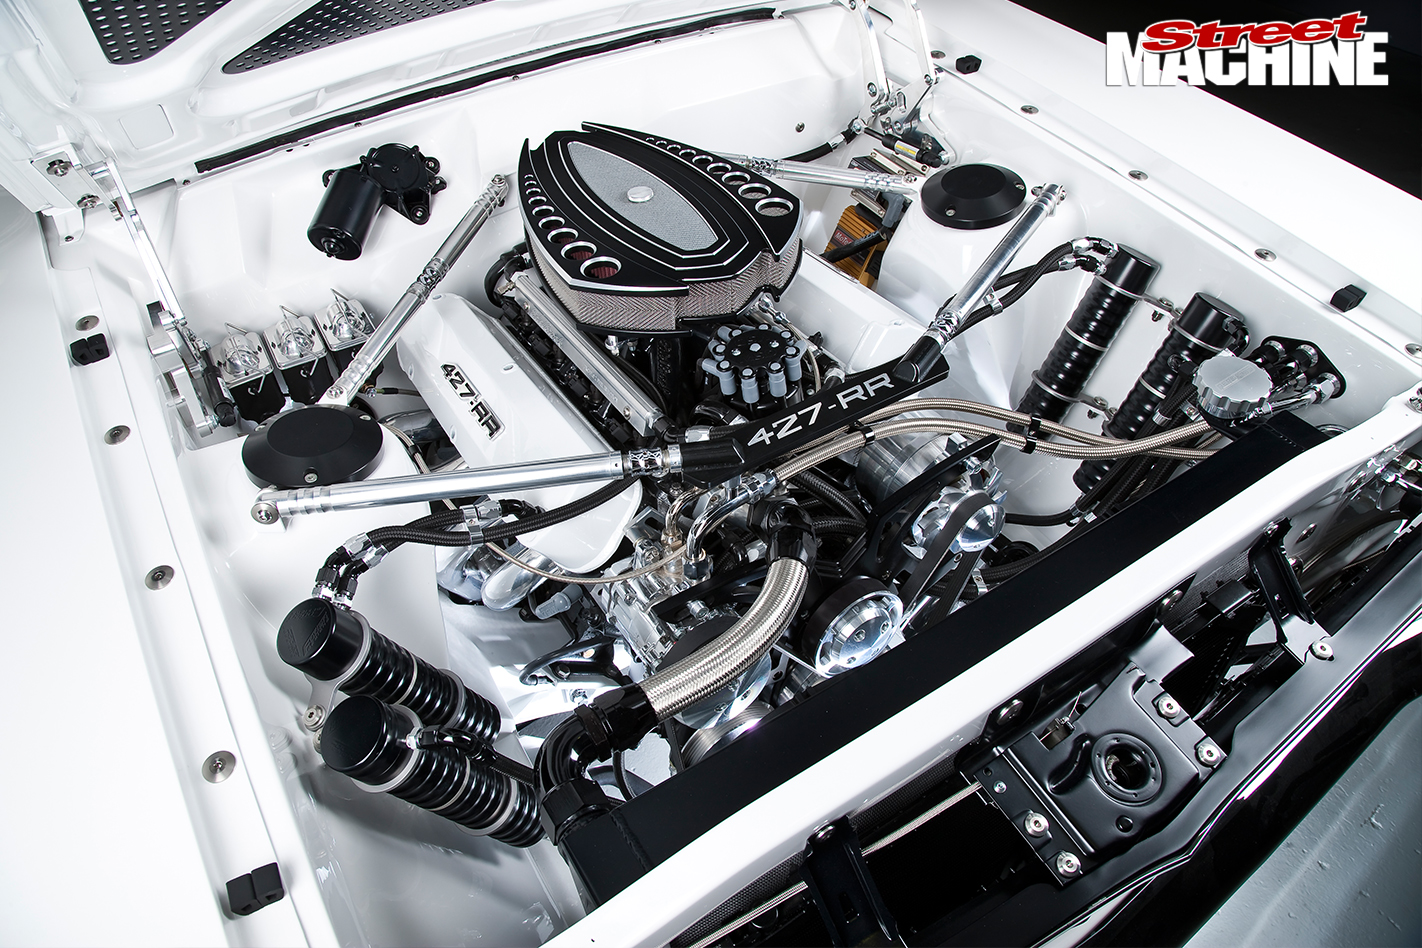 Ford -Falcon -XY-Elite -engine -bay -2